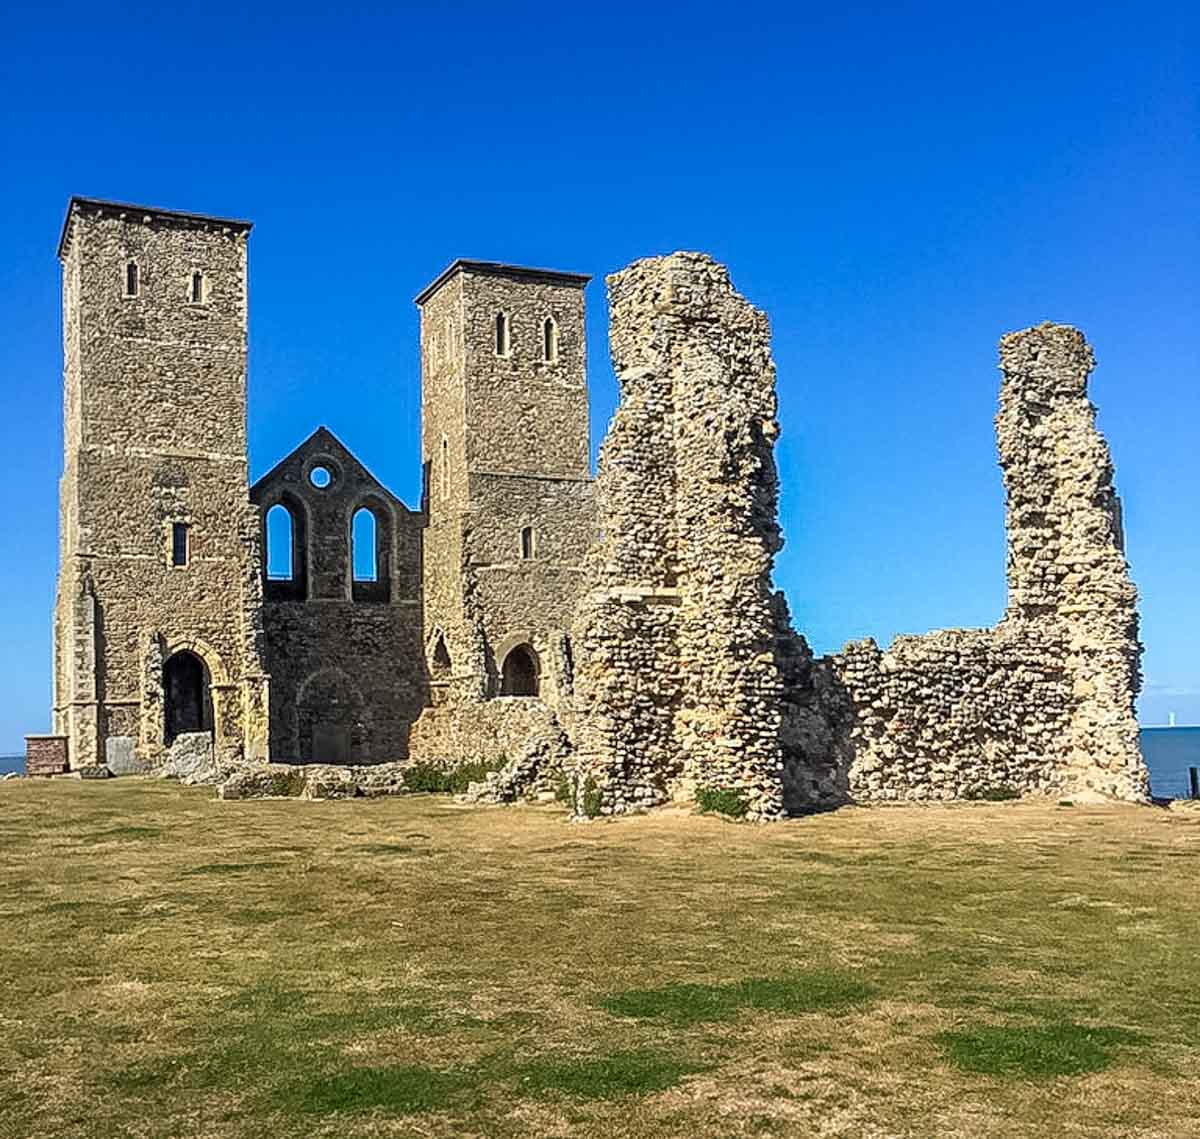 IMG_2918 Exploring the Historic Reculver Towers of Herne Bay